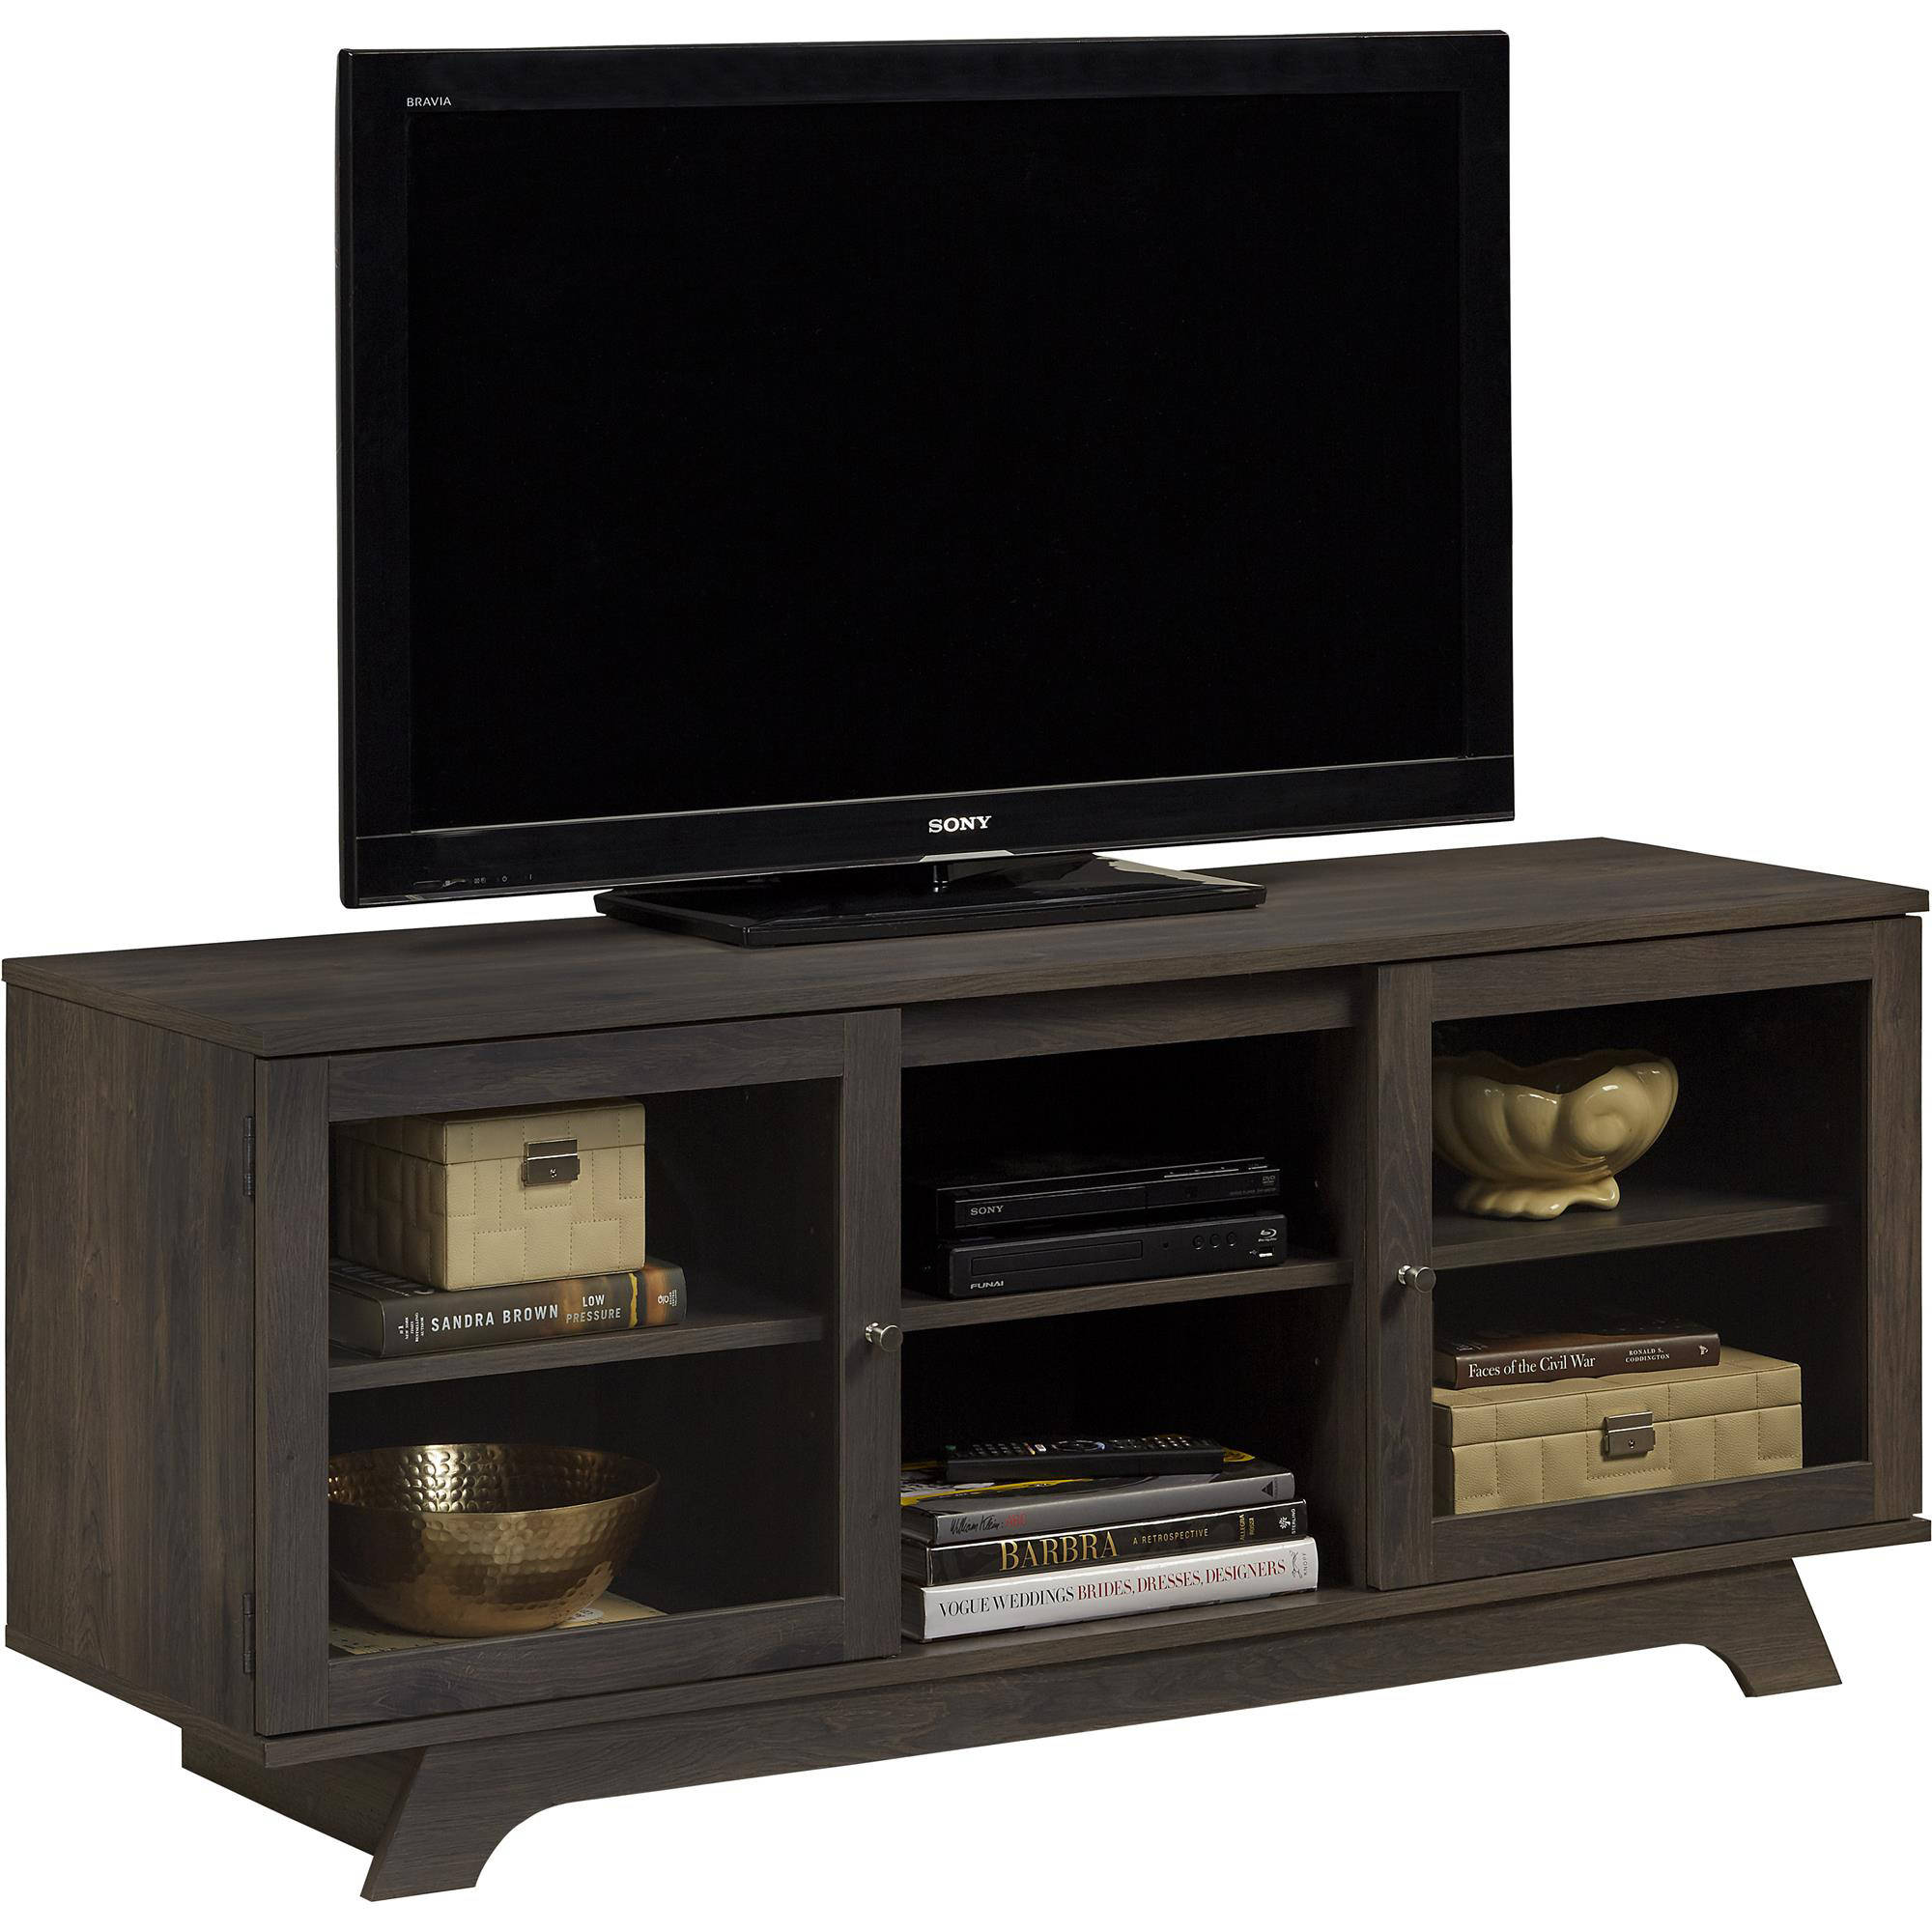 Tv Stand 55 Inch Flat Screen Home Furniture Entertainment Media